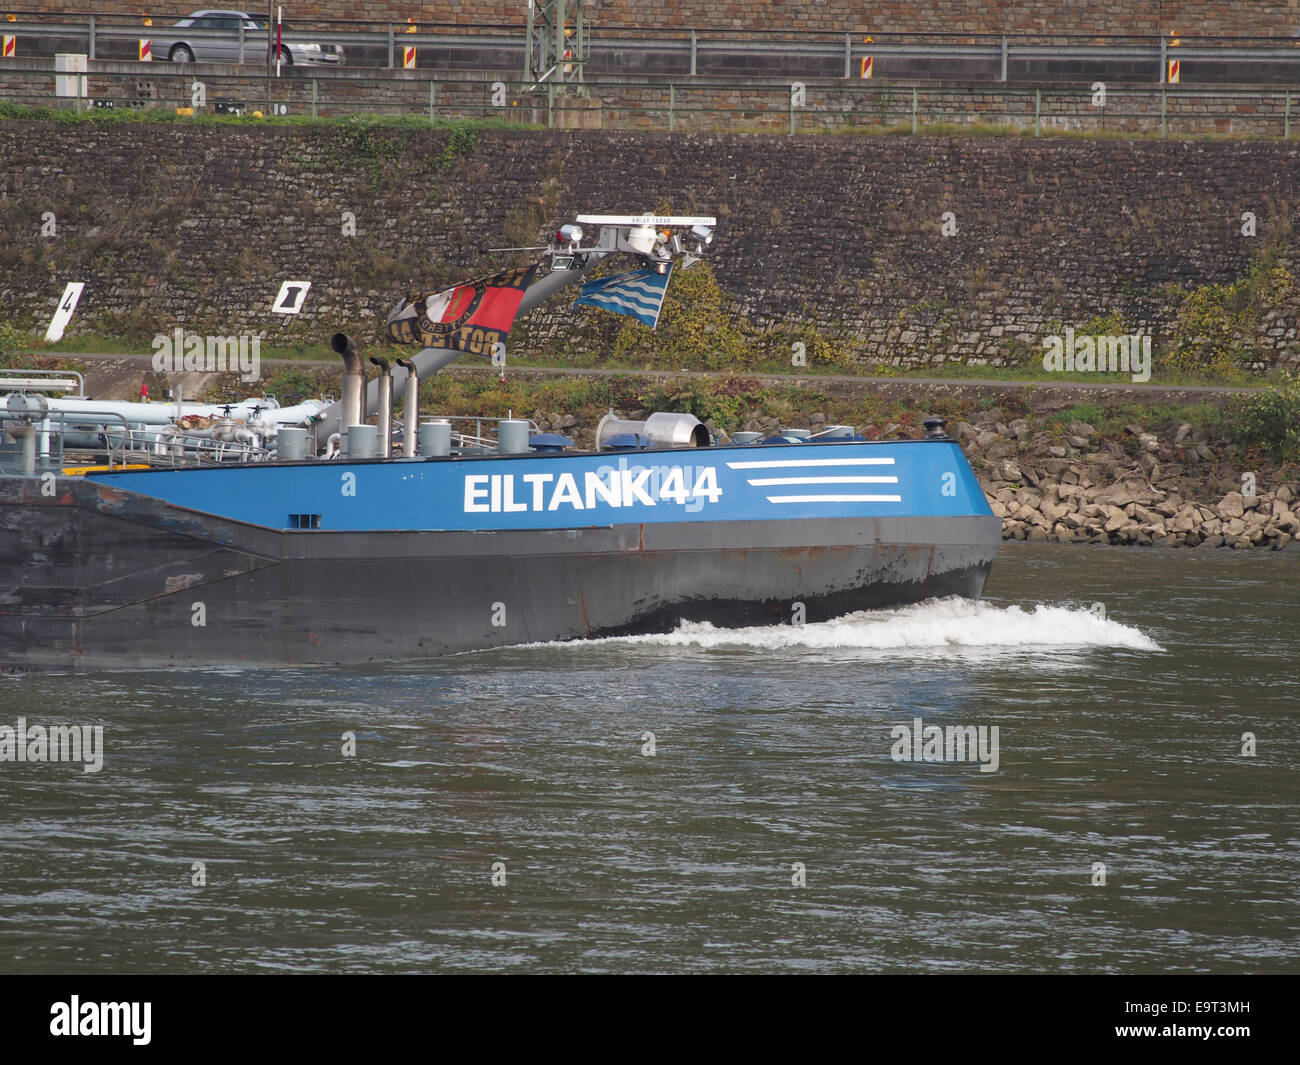 Eiltank 44, ENI 04804180 on the Rhine river at Koblenz, pic2 - Stock Image